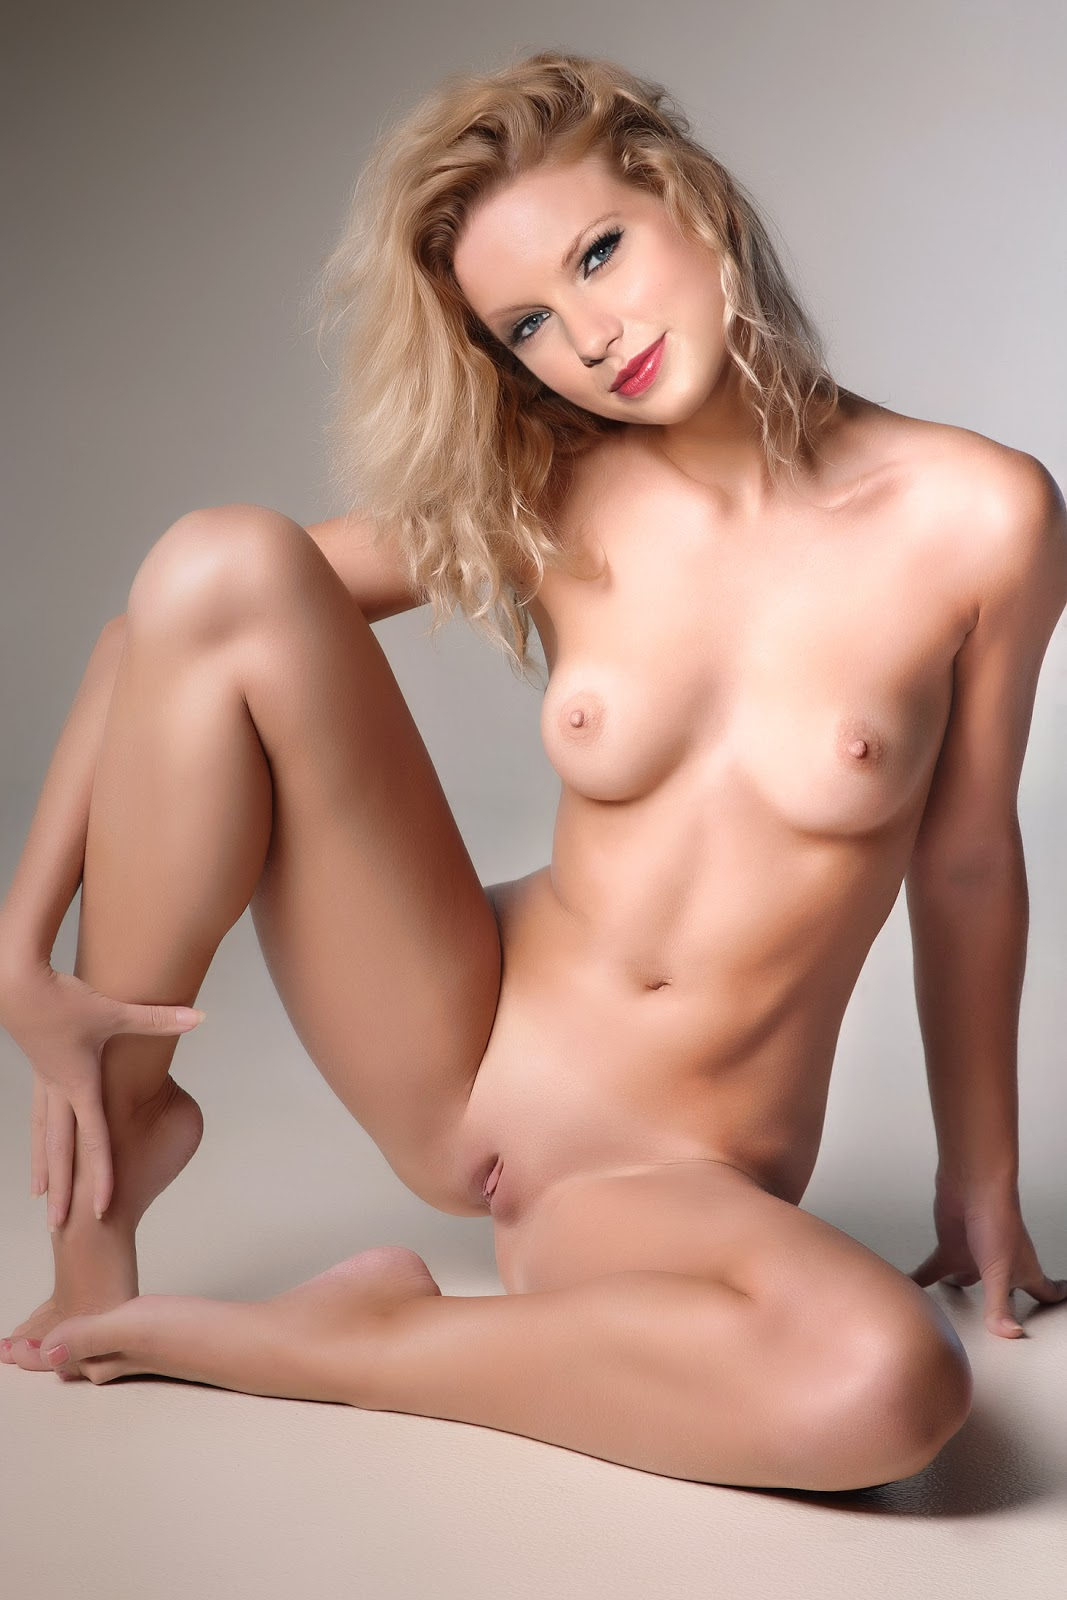 Taylor swift fake nudes